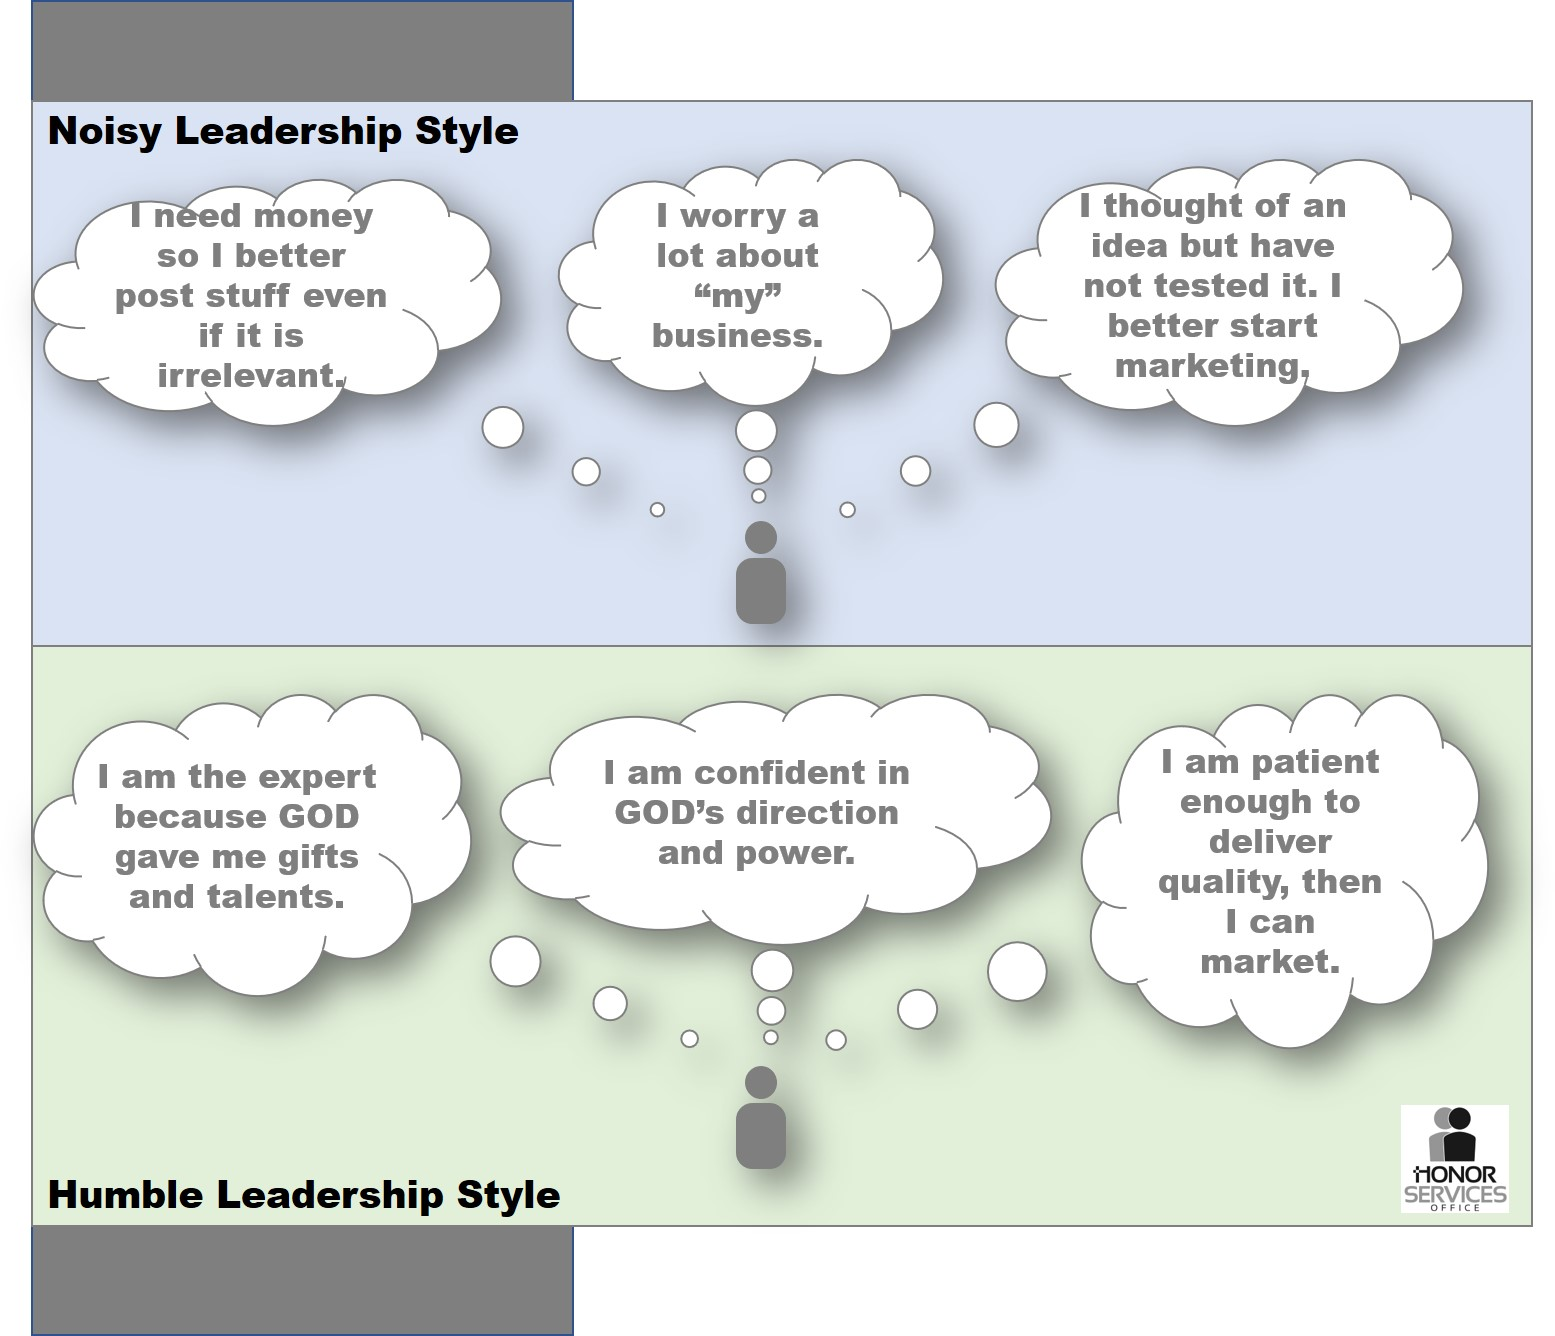 Vision Series Assignment 7 - Humble Leadership Means Power